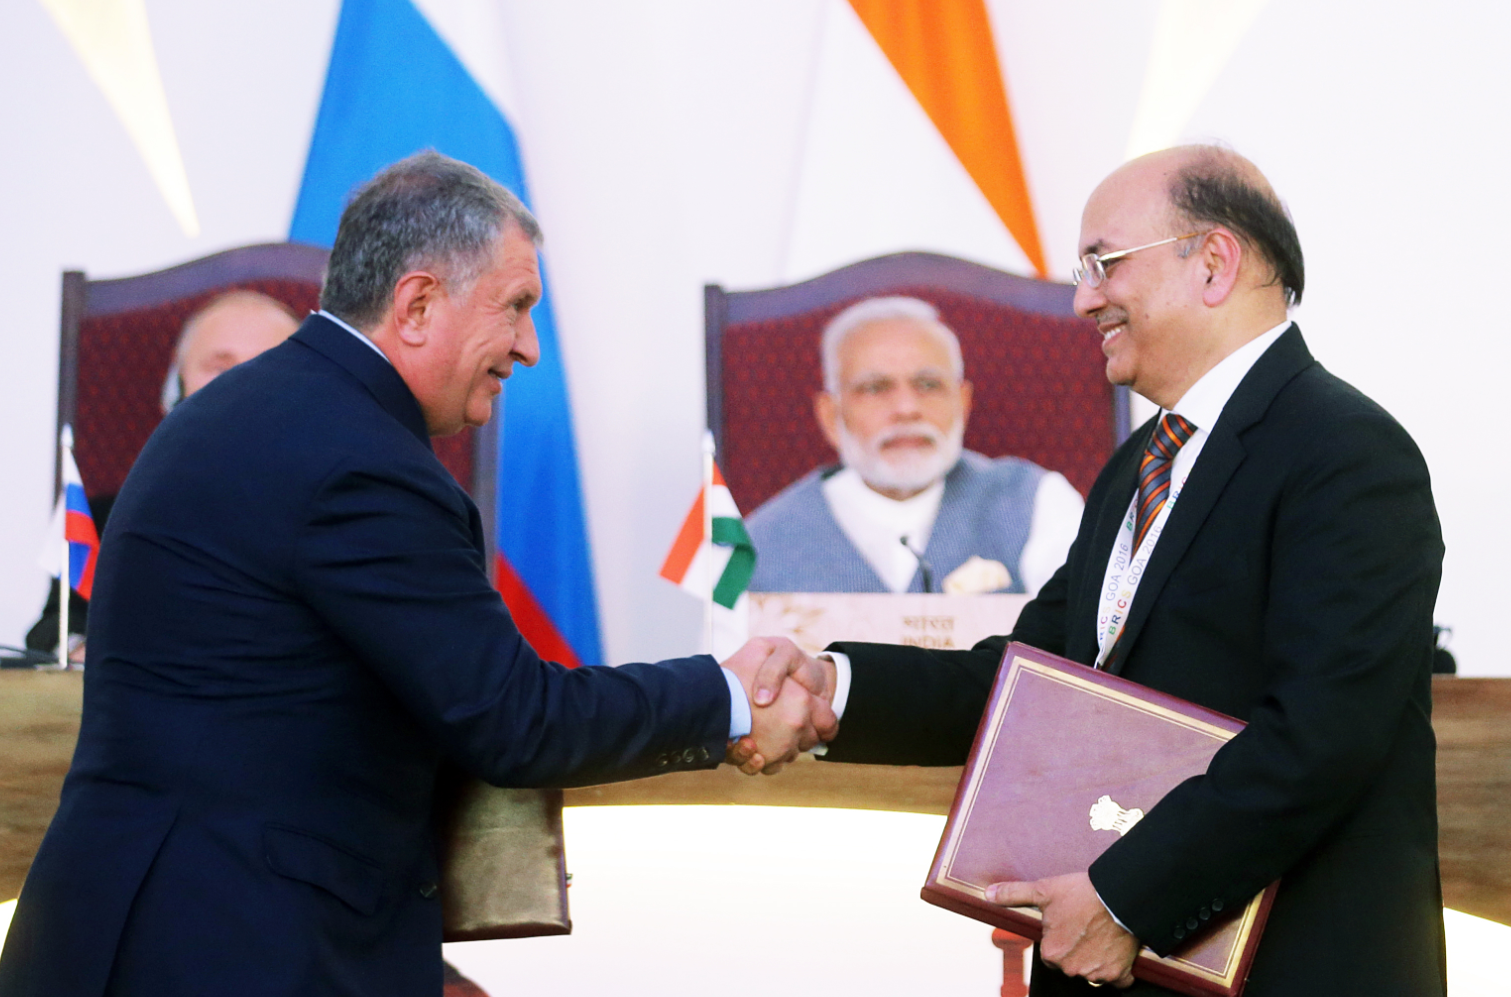 Rosneft oil company CEO Igor Sechin, left, and Narendra Verma, Managing Director of ONGC Videsh Limited, at the ceremony of signing documents attended by Russian President Vladimir Putin and Indian Prime Minister Narendra Modi in Goa, India, Oct. 15, 2016.